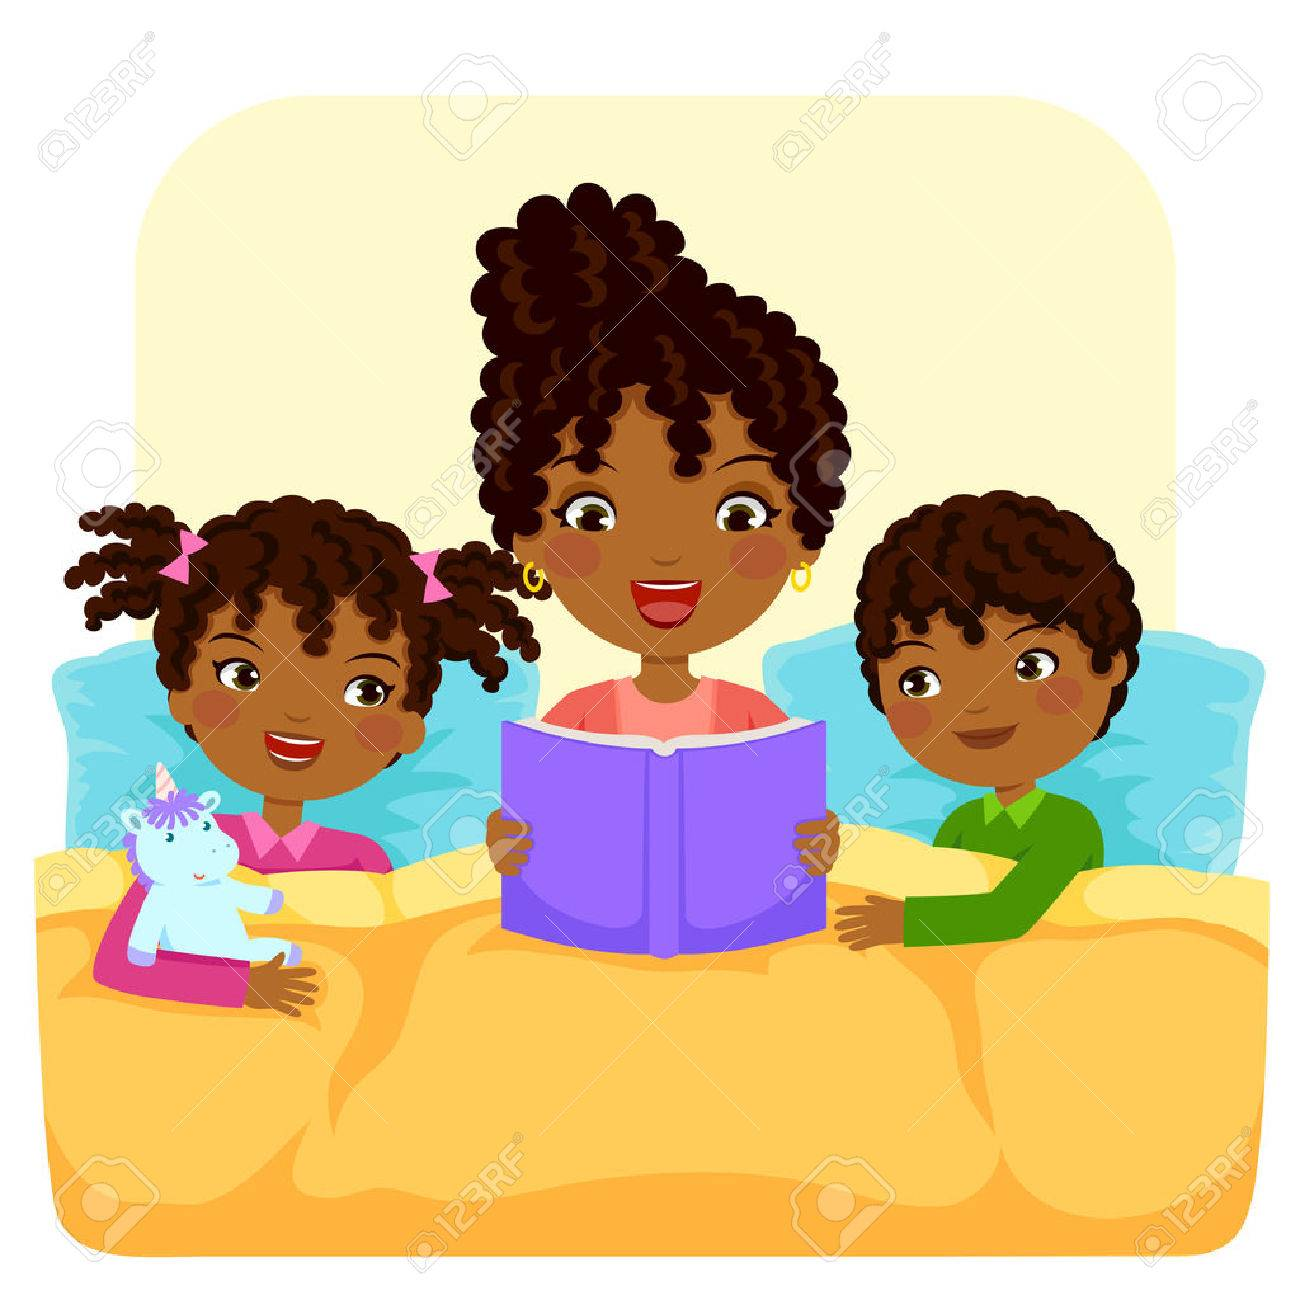 dark skinned woman reading bedtime story to children royalty free rh 123rf com clipart bedtime story bedtime clipart free